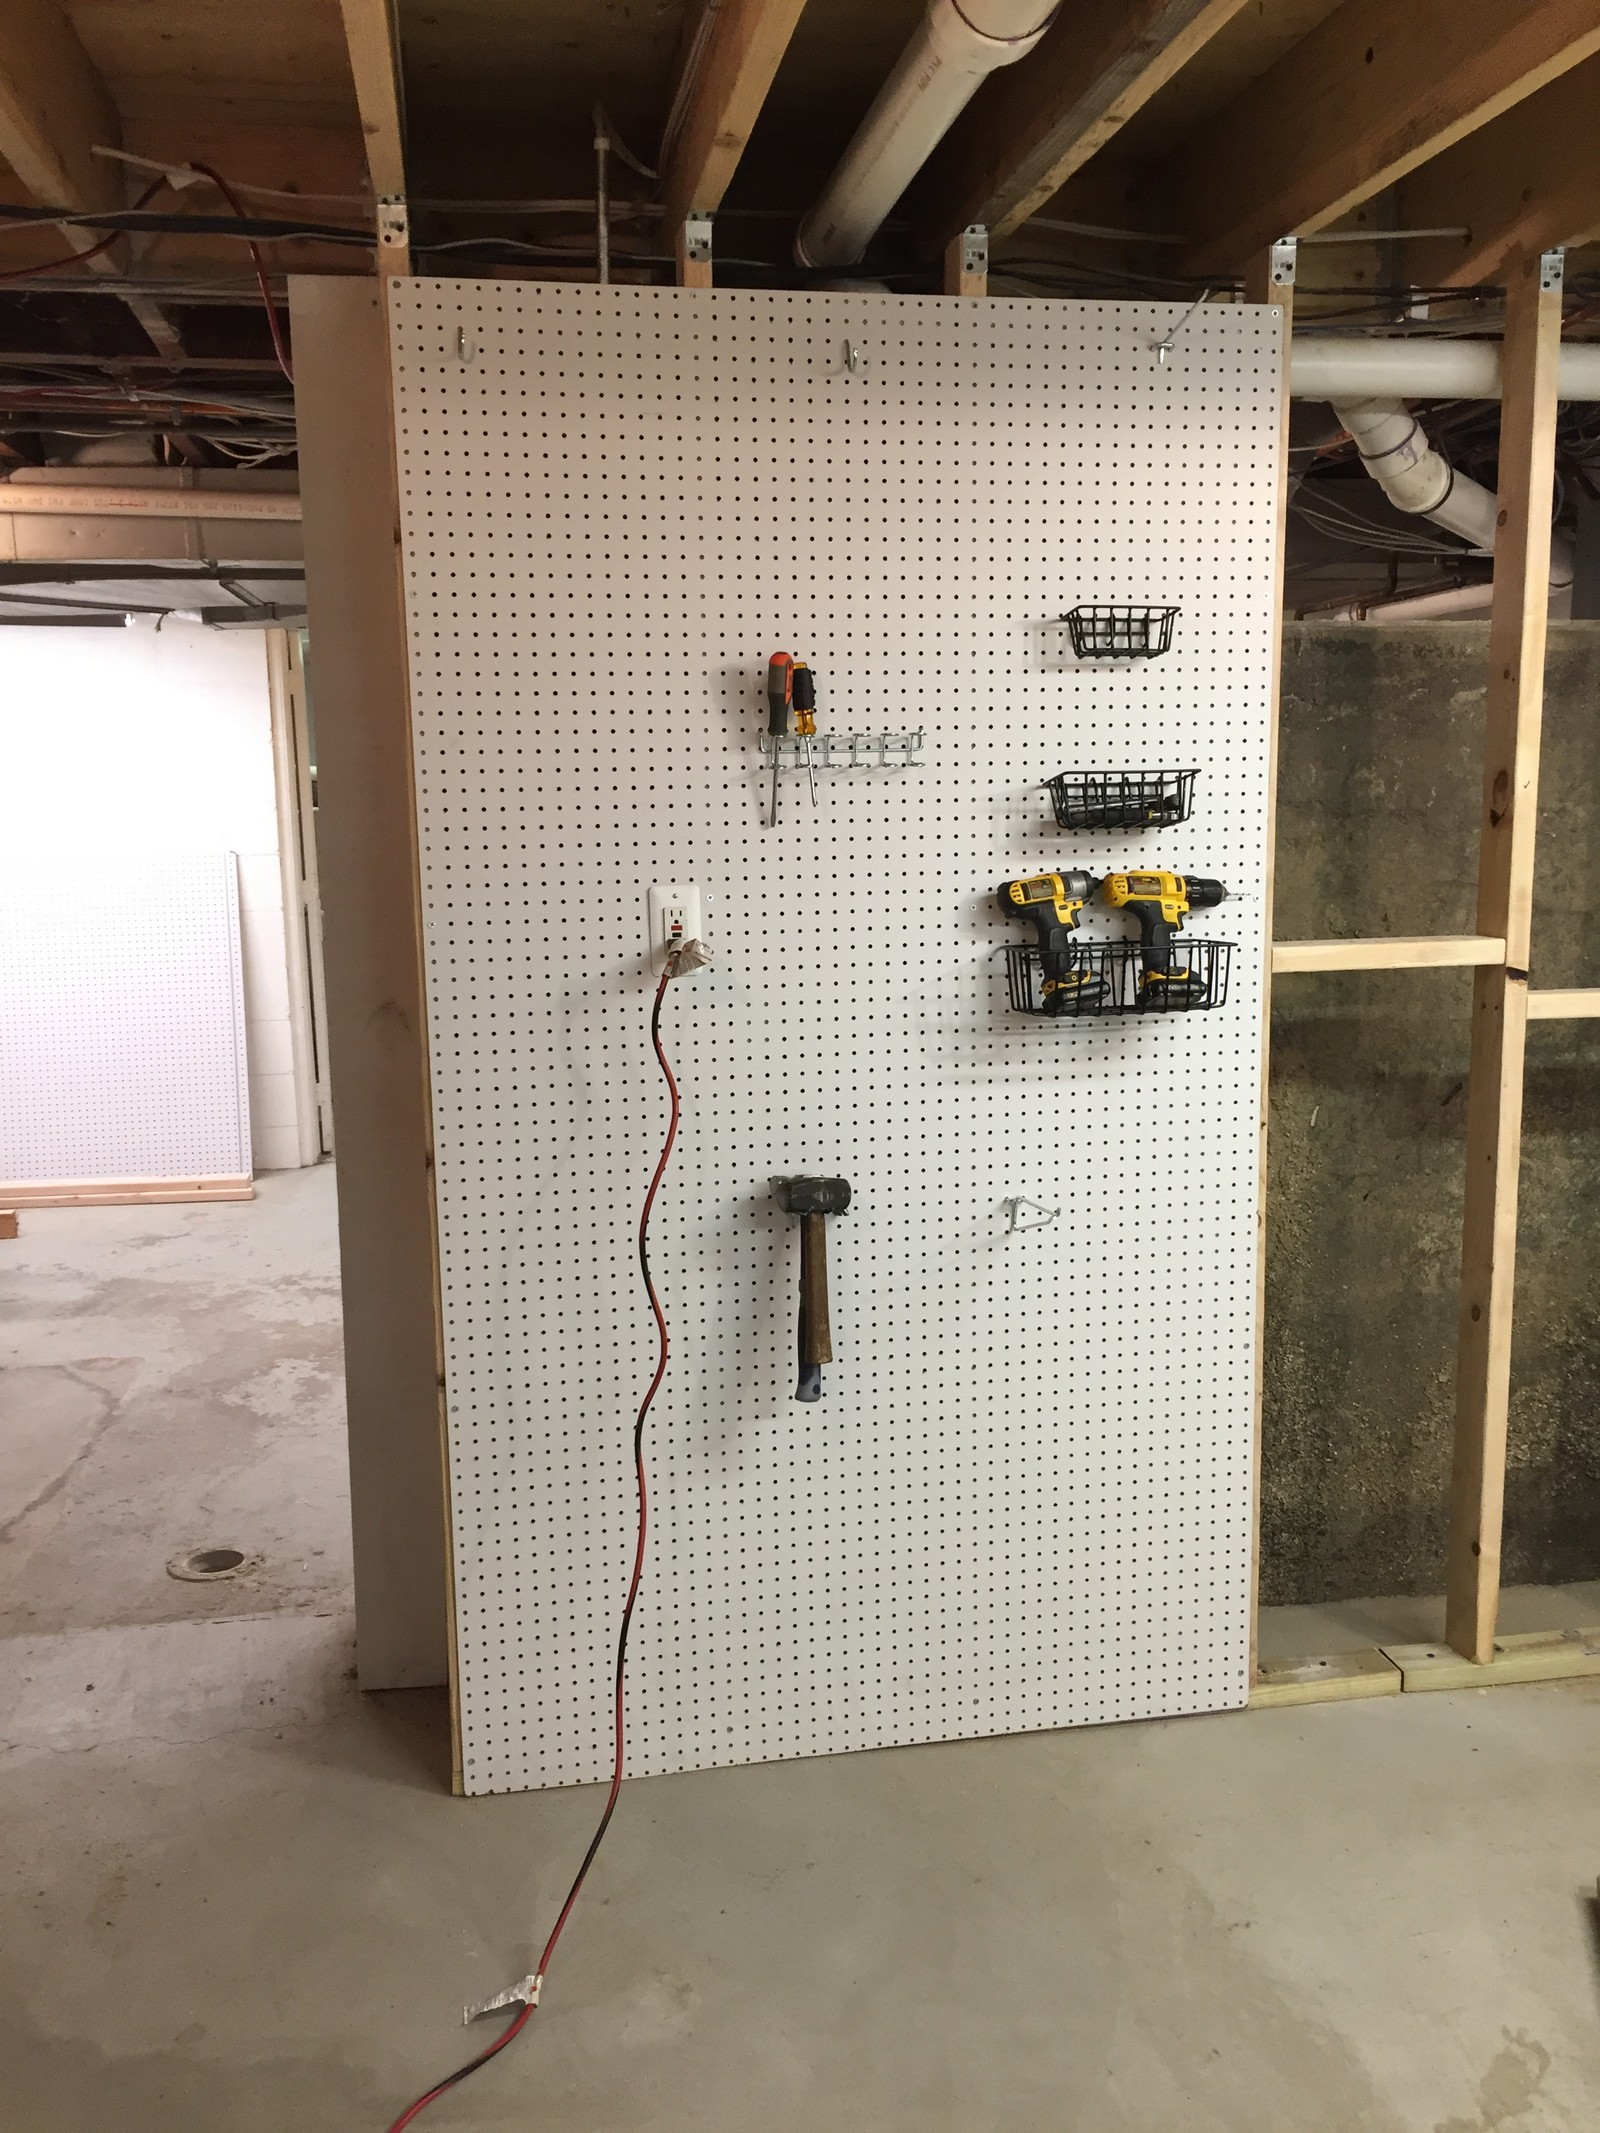 """With 16"""" spacing between each stud, I was able to mount each 48"""" wide sheet of pegboard to a joist so that the end of each piece was on a stud. That helped a lot with strength when attaching tools to the boards. I also mounted an electrical outlet to one of the joists so that it was accessible on the wall. Finally, I made cut-outs in the wall so I could remove pieces of the panel for access to the sewer or water lines."""